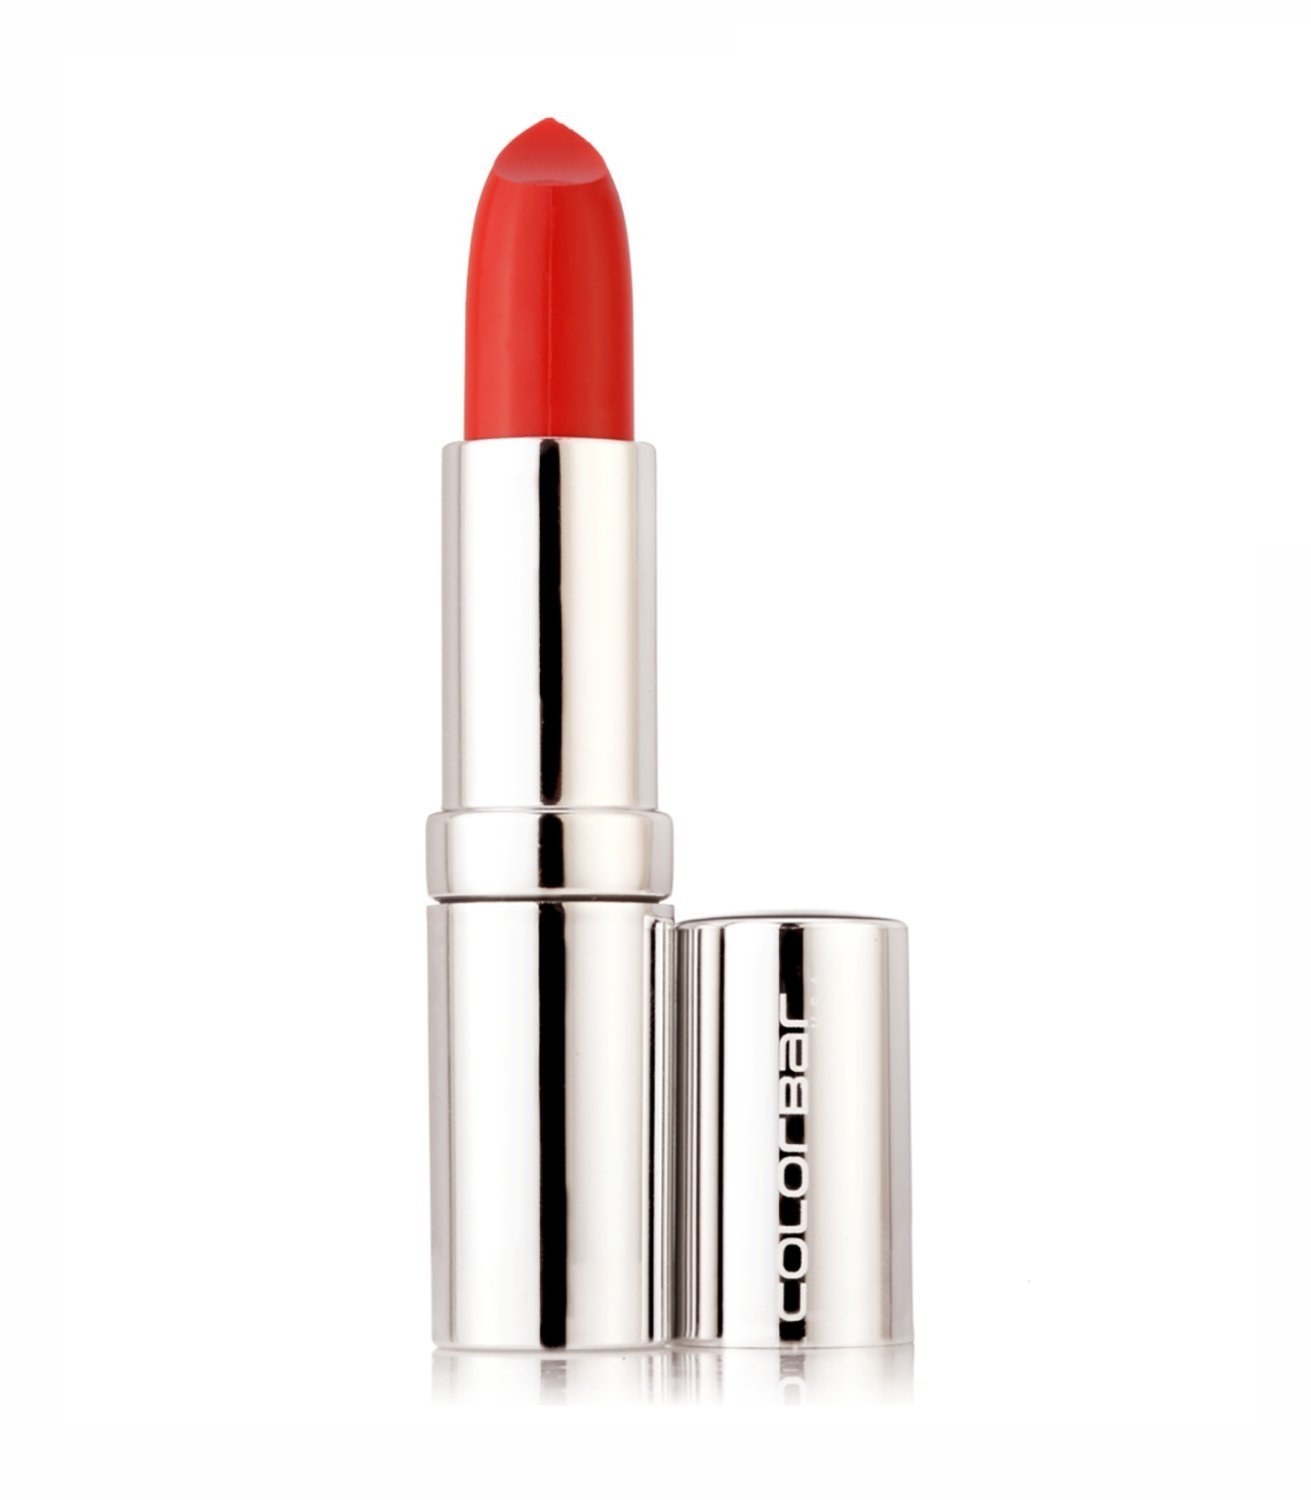 Colorbar Soft Touch Lipstick, Citrine, 4.2g